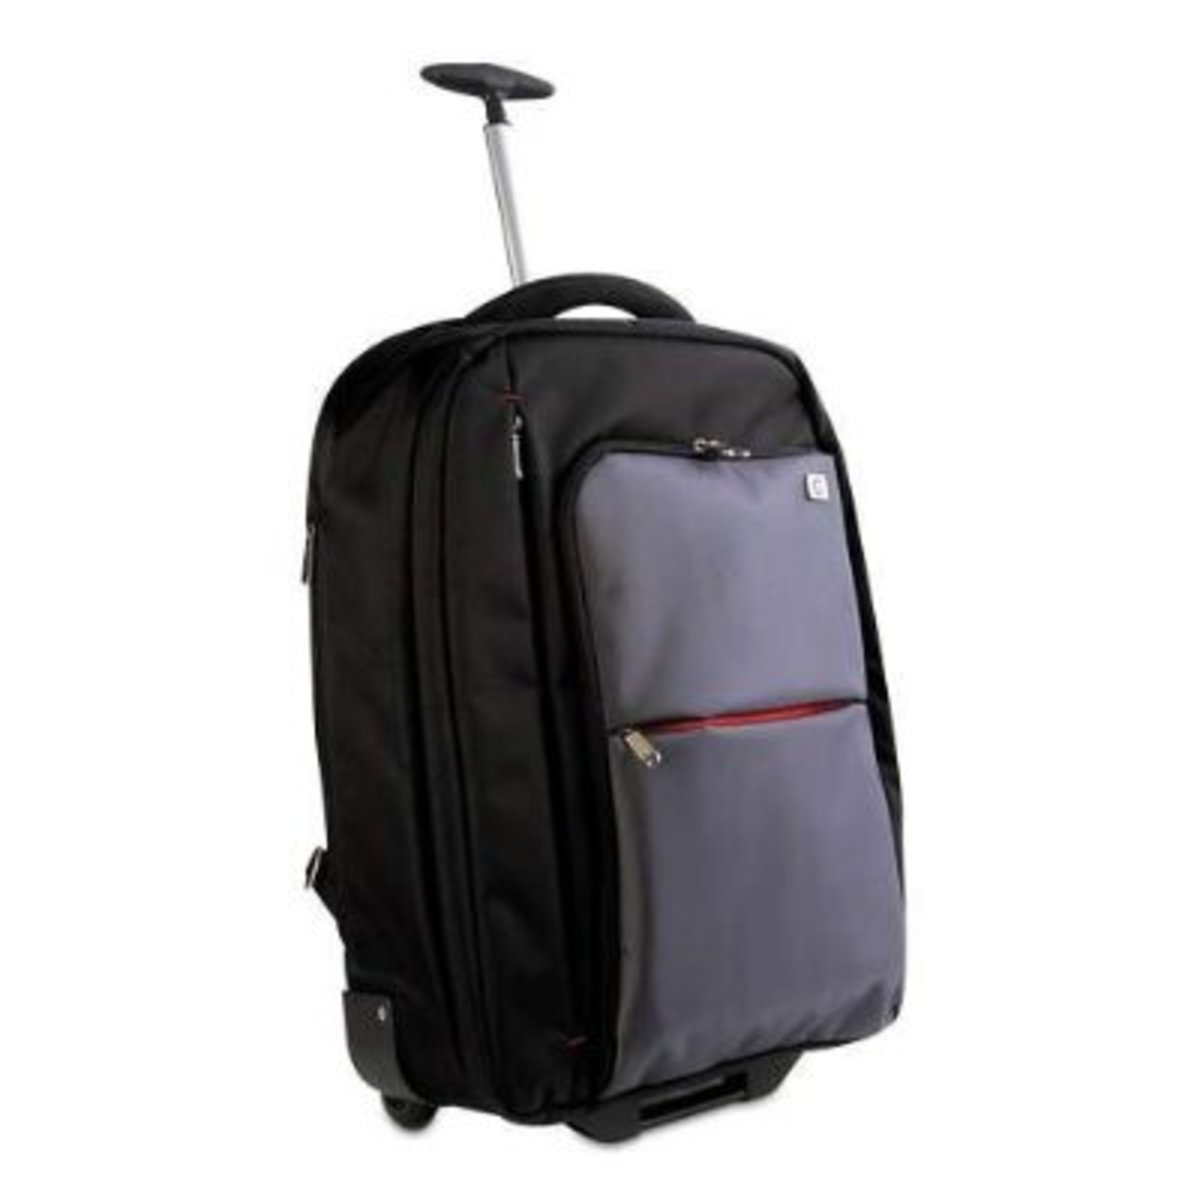 Laptop Cases amp Bags for sale  eBay